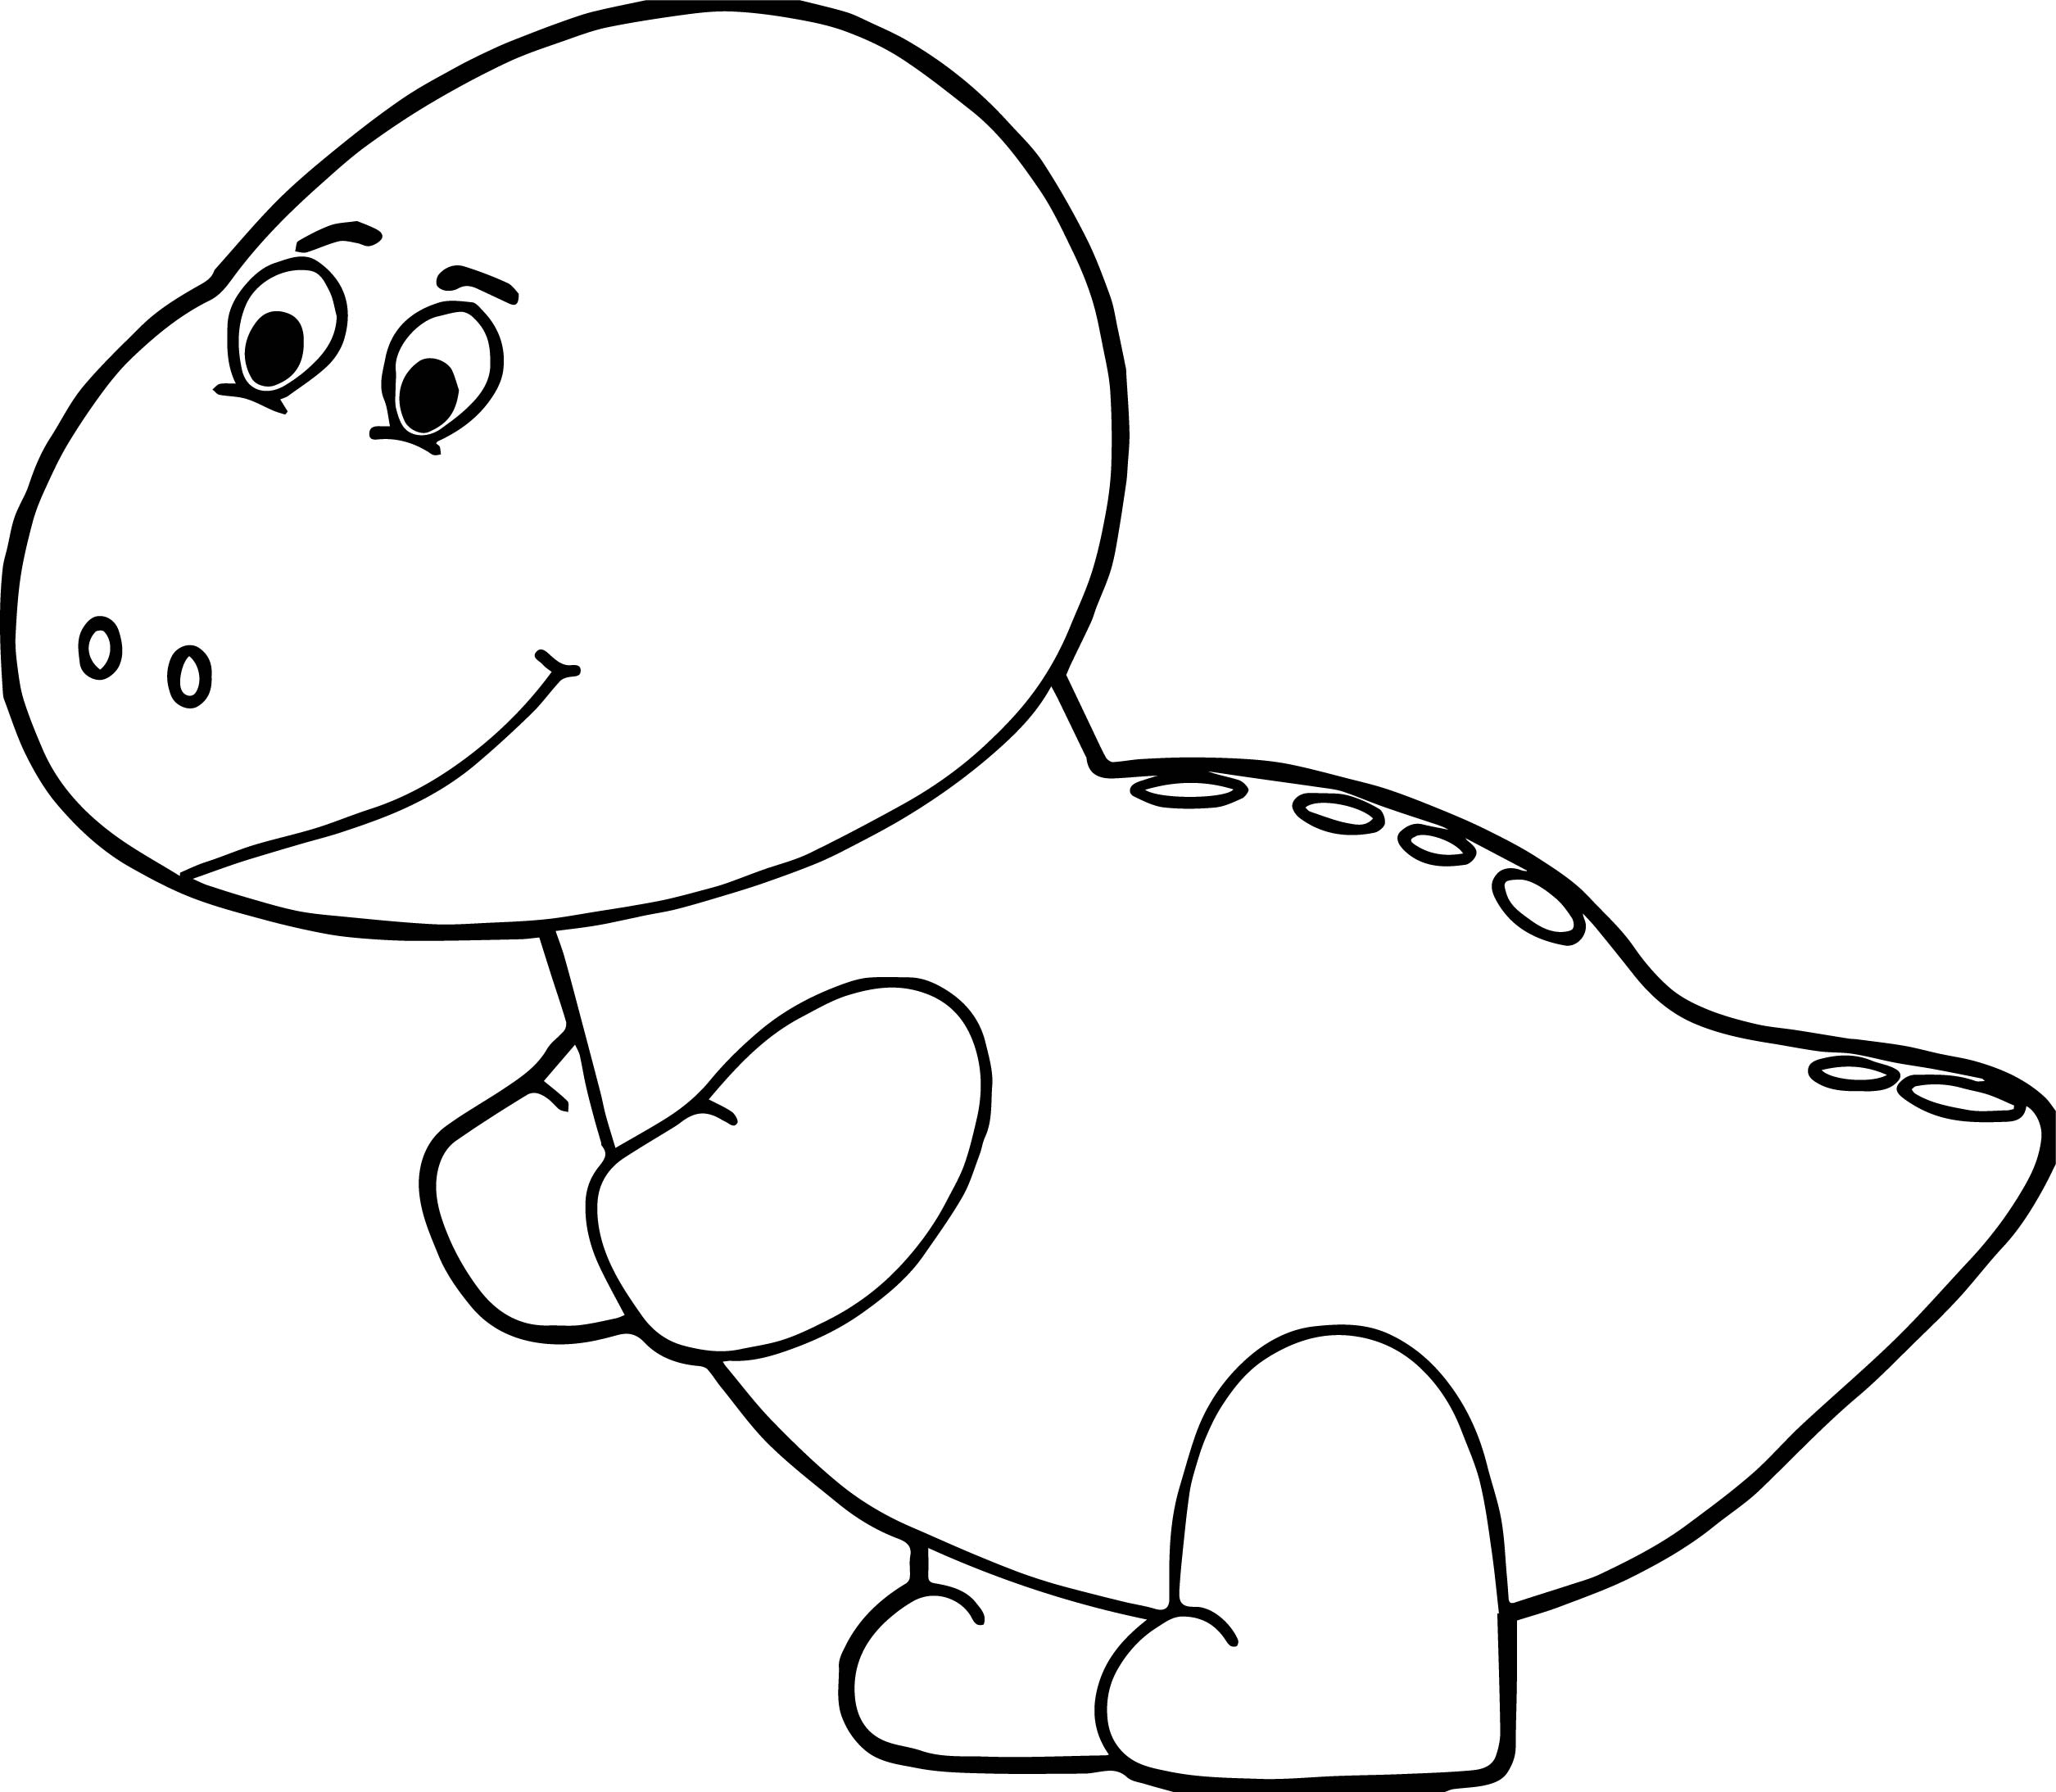 dinosaur head pages coloring pages. Black Bedroom Furniture Sets. Home Design Ideas